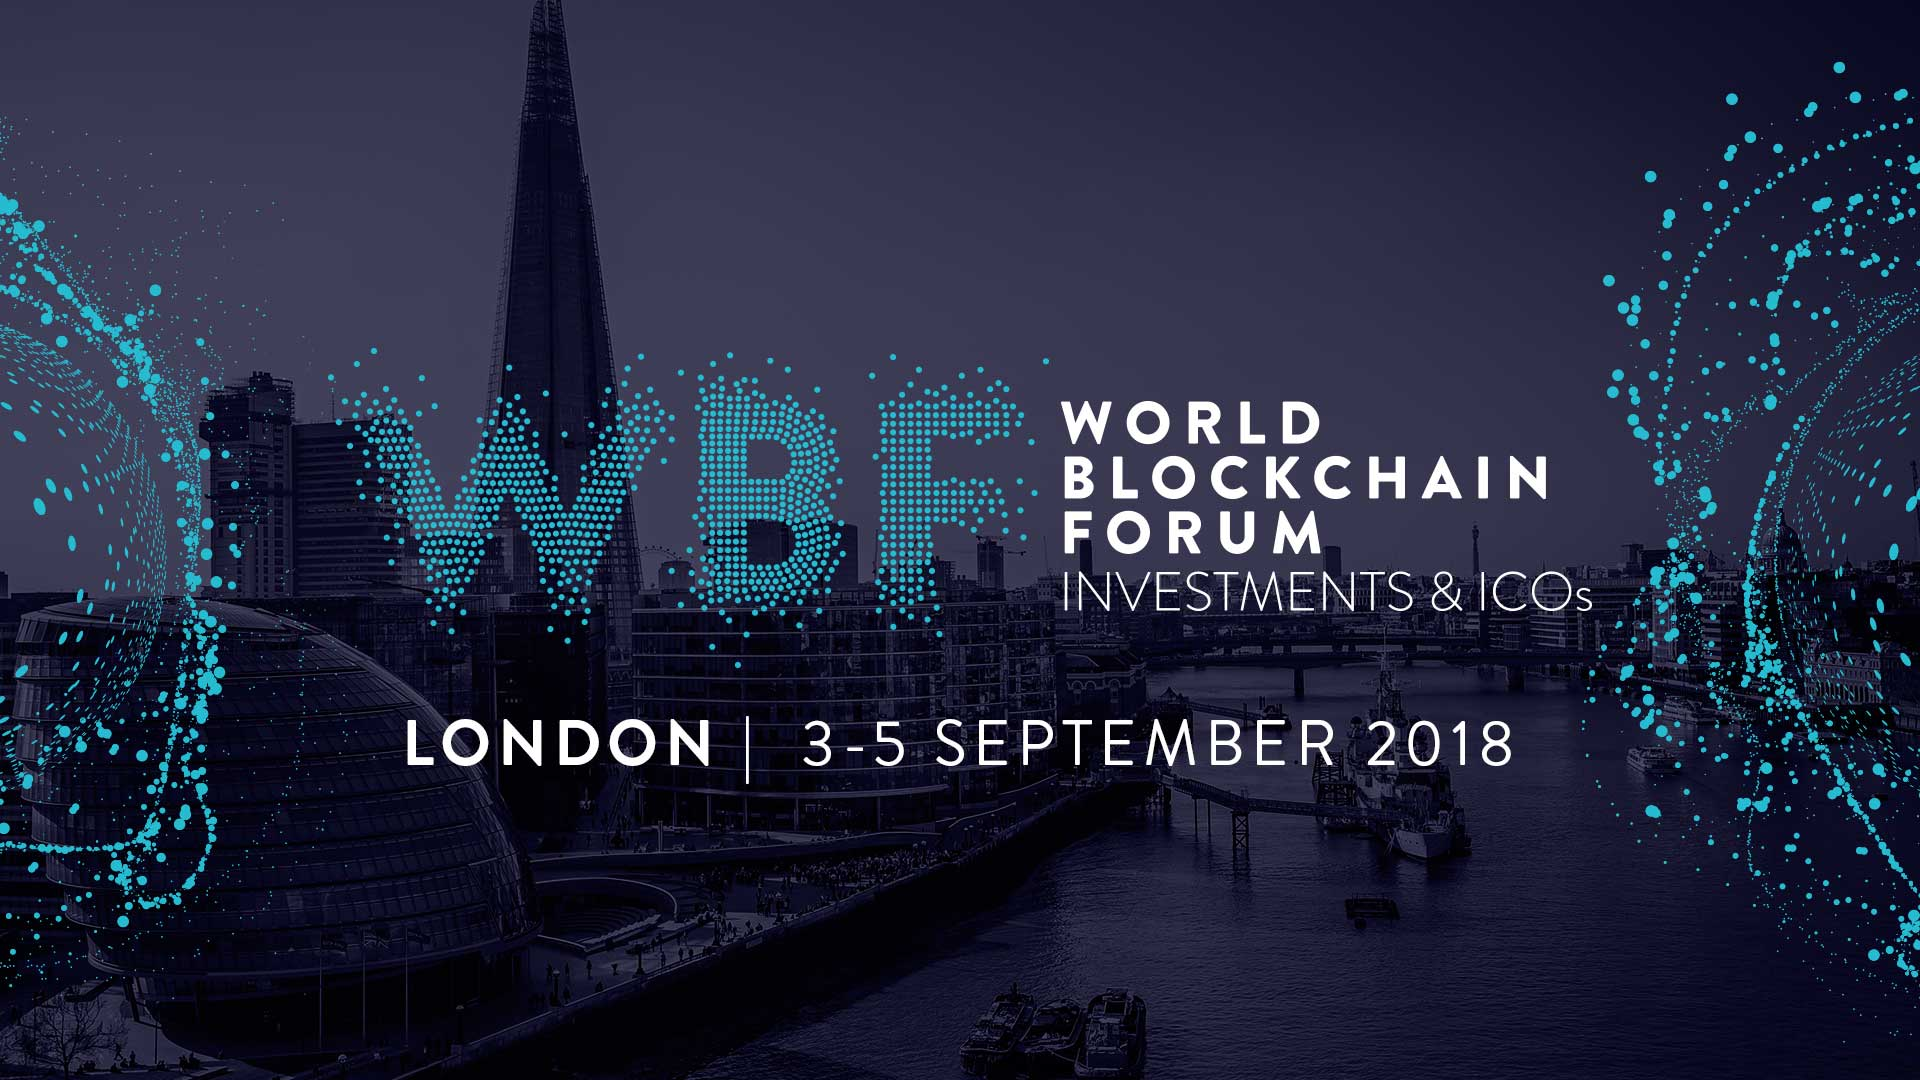 PR: Keynote Brings the World Blockchain Forum to London - Bitcoin News